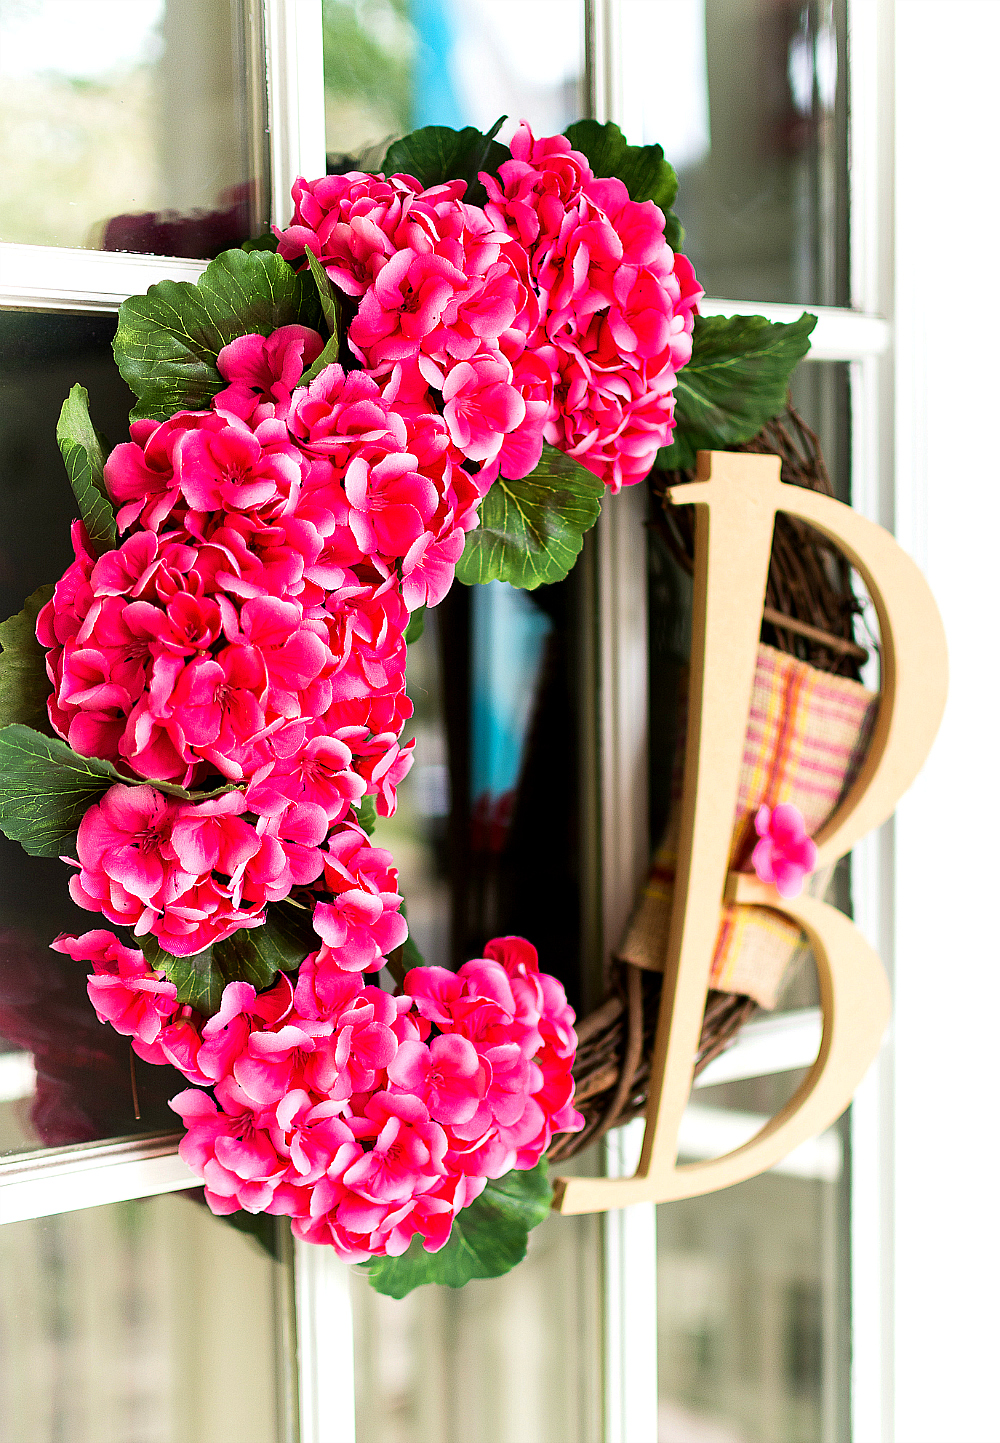 Geranium Monogram Wreath - Pink Wreath Ideas - Monogram Wreath Ideas for Spring with Geraniums - DIY Tutorial